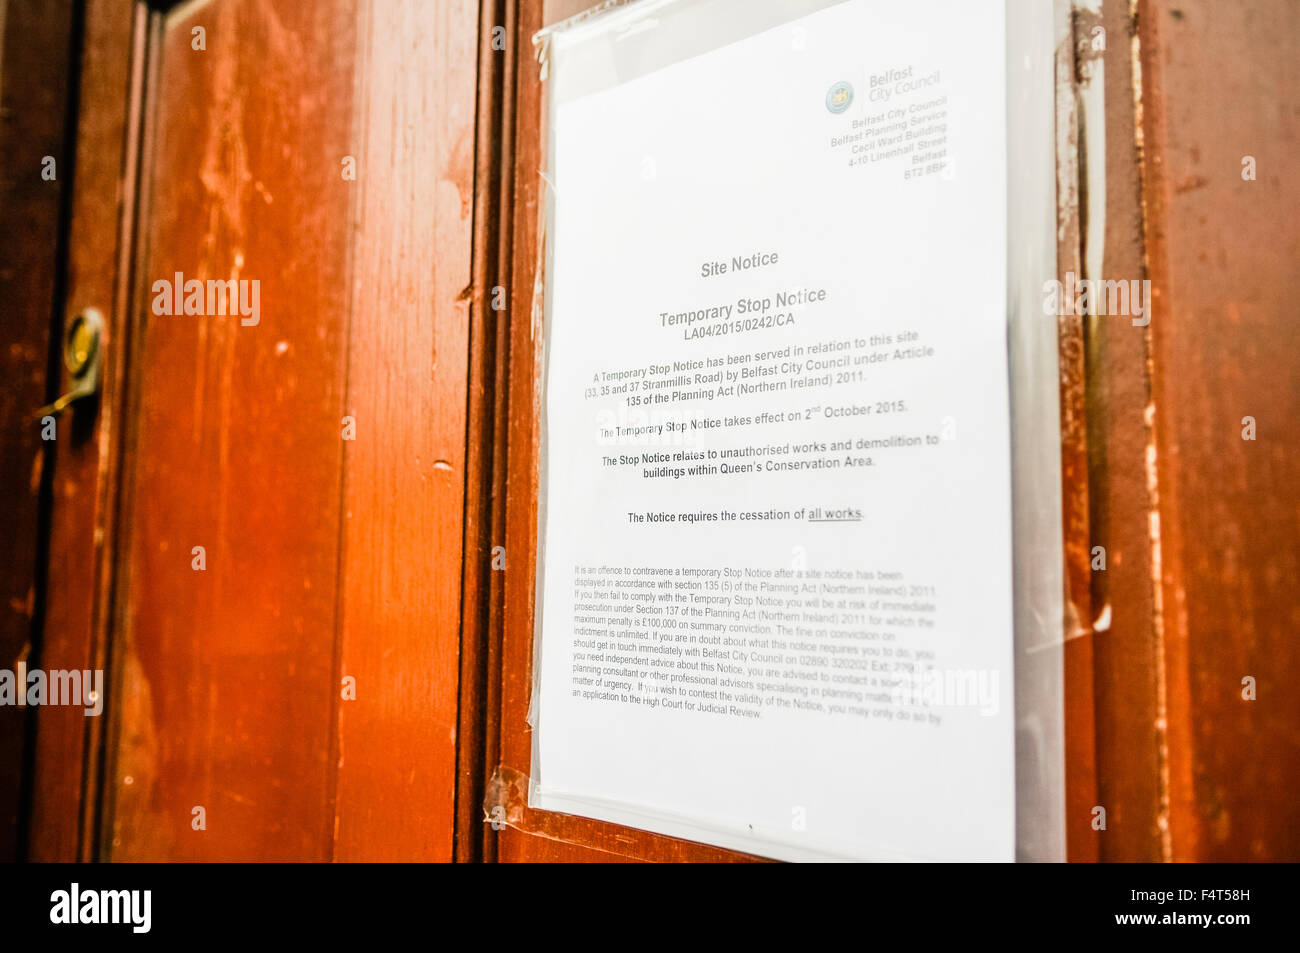 'Stop notice' served on a building under protection from being demolished, within the Queens University - Stock Image